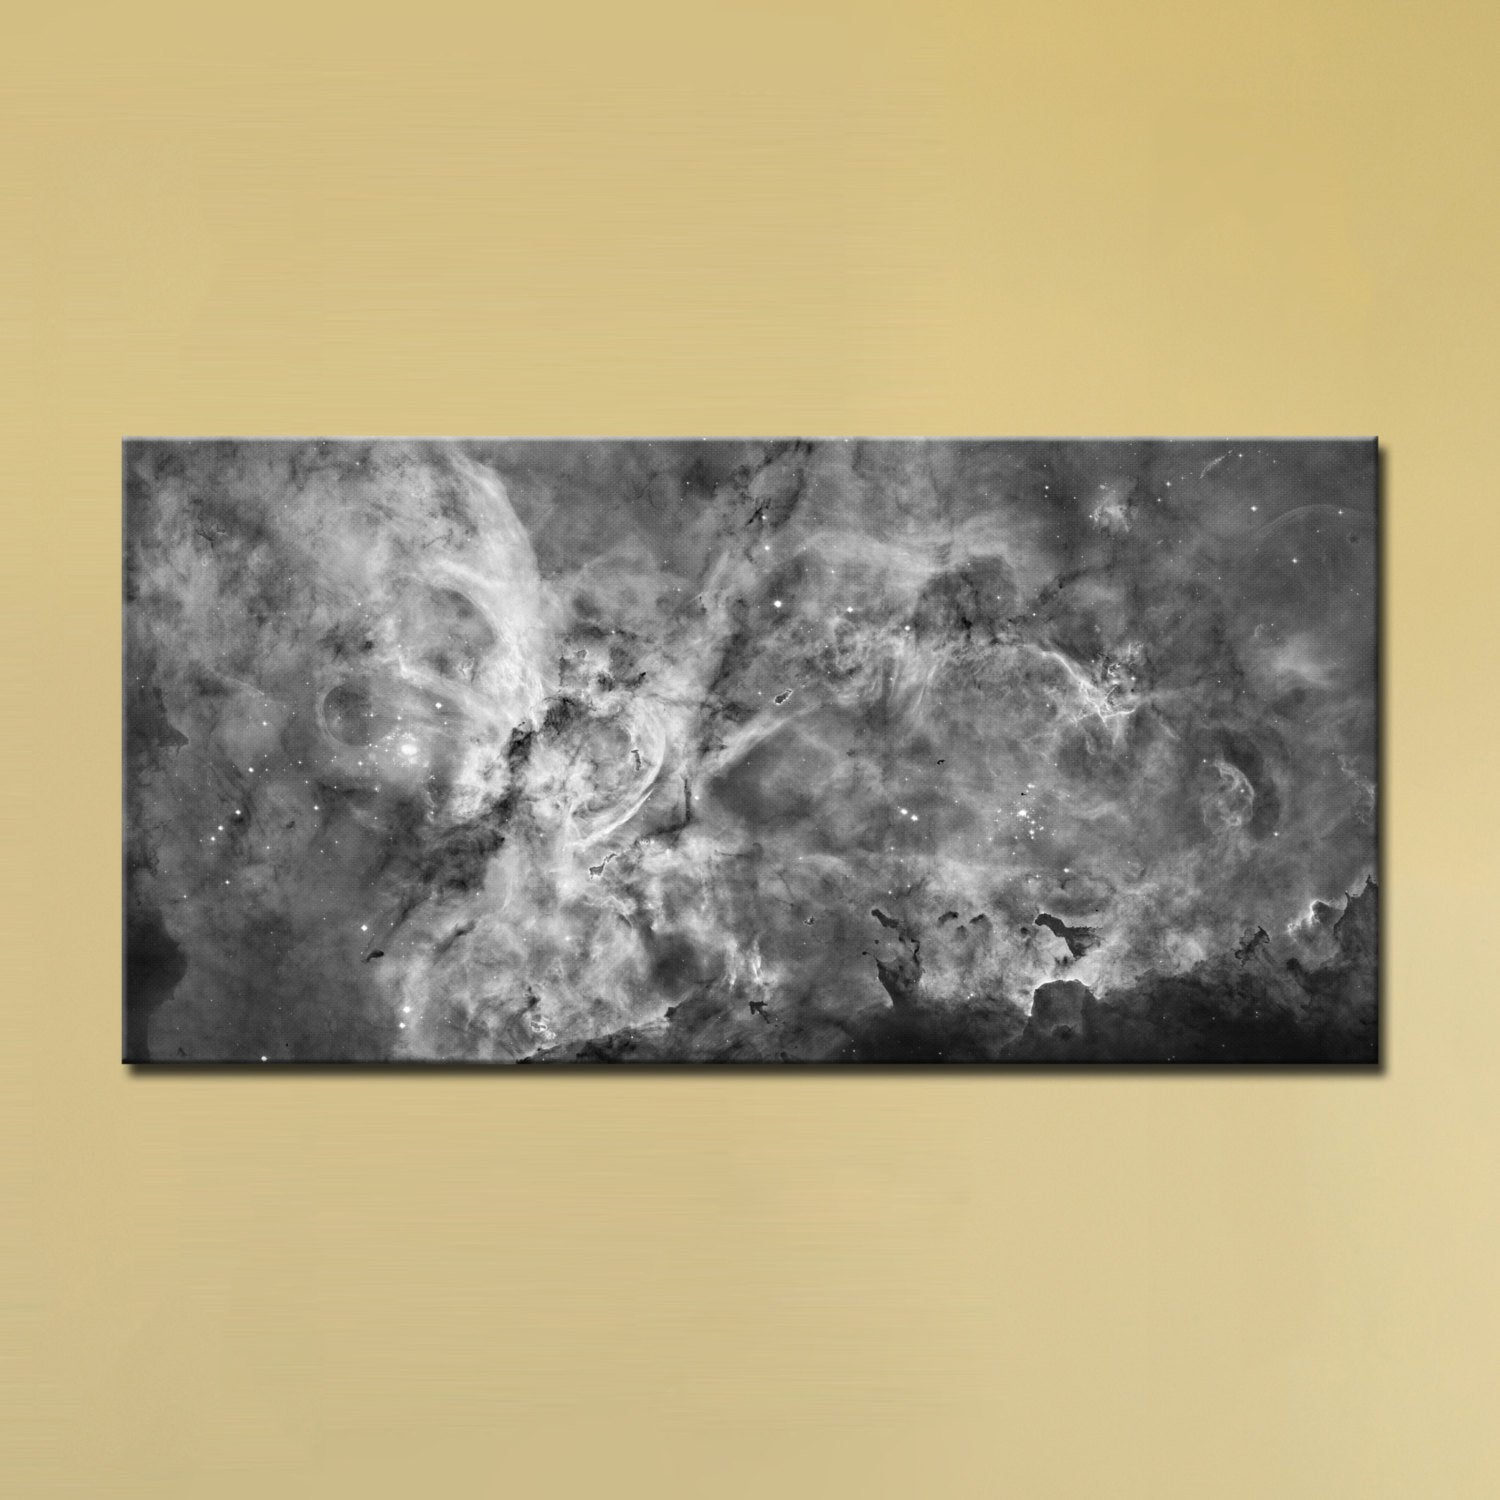 "The Carina Nebula, Star Birth in the Extreme (Grayscale) (32"" x 48"") - Canvas Wrap Print"